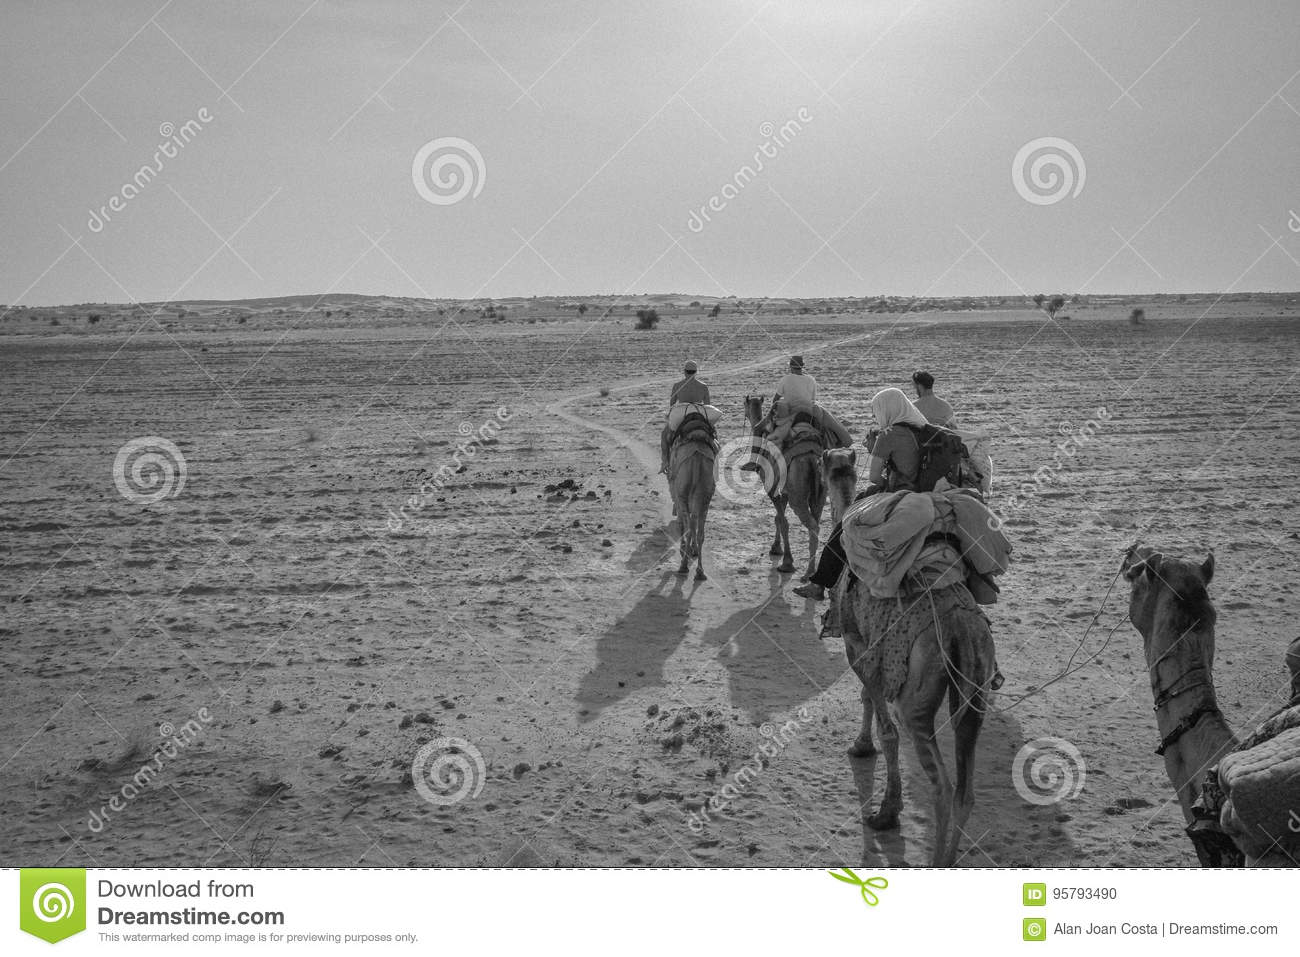 Camel Ride in the desert of Rajasthan, India